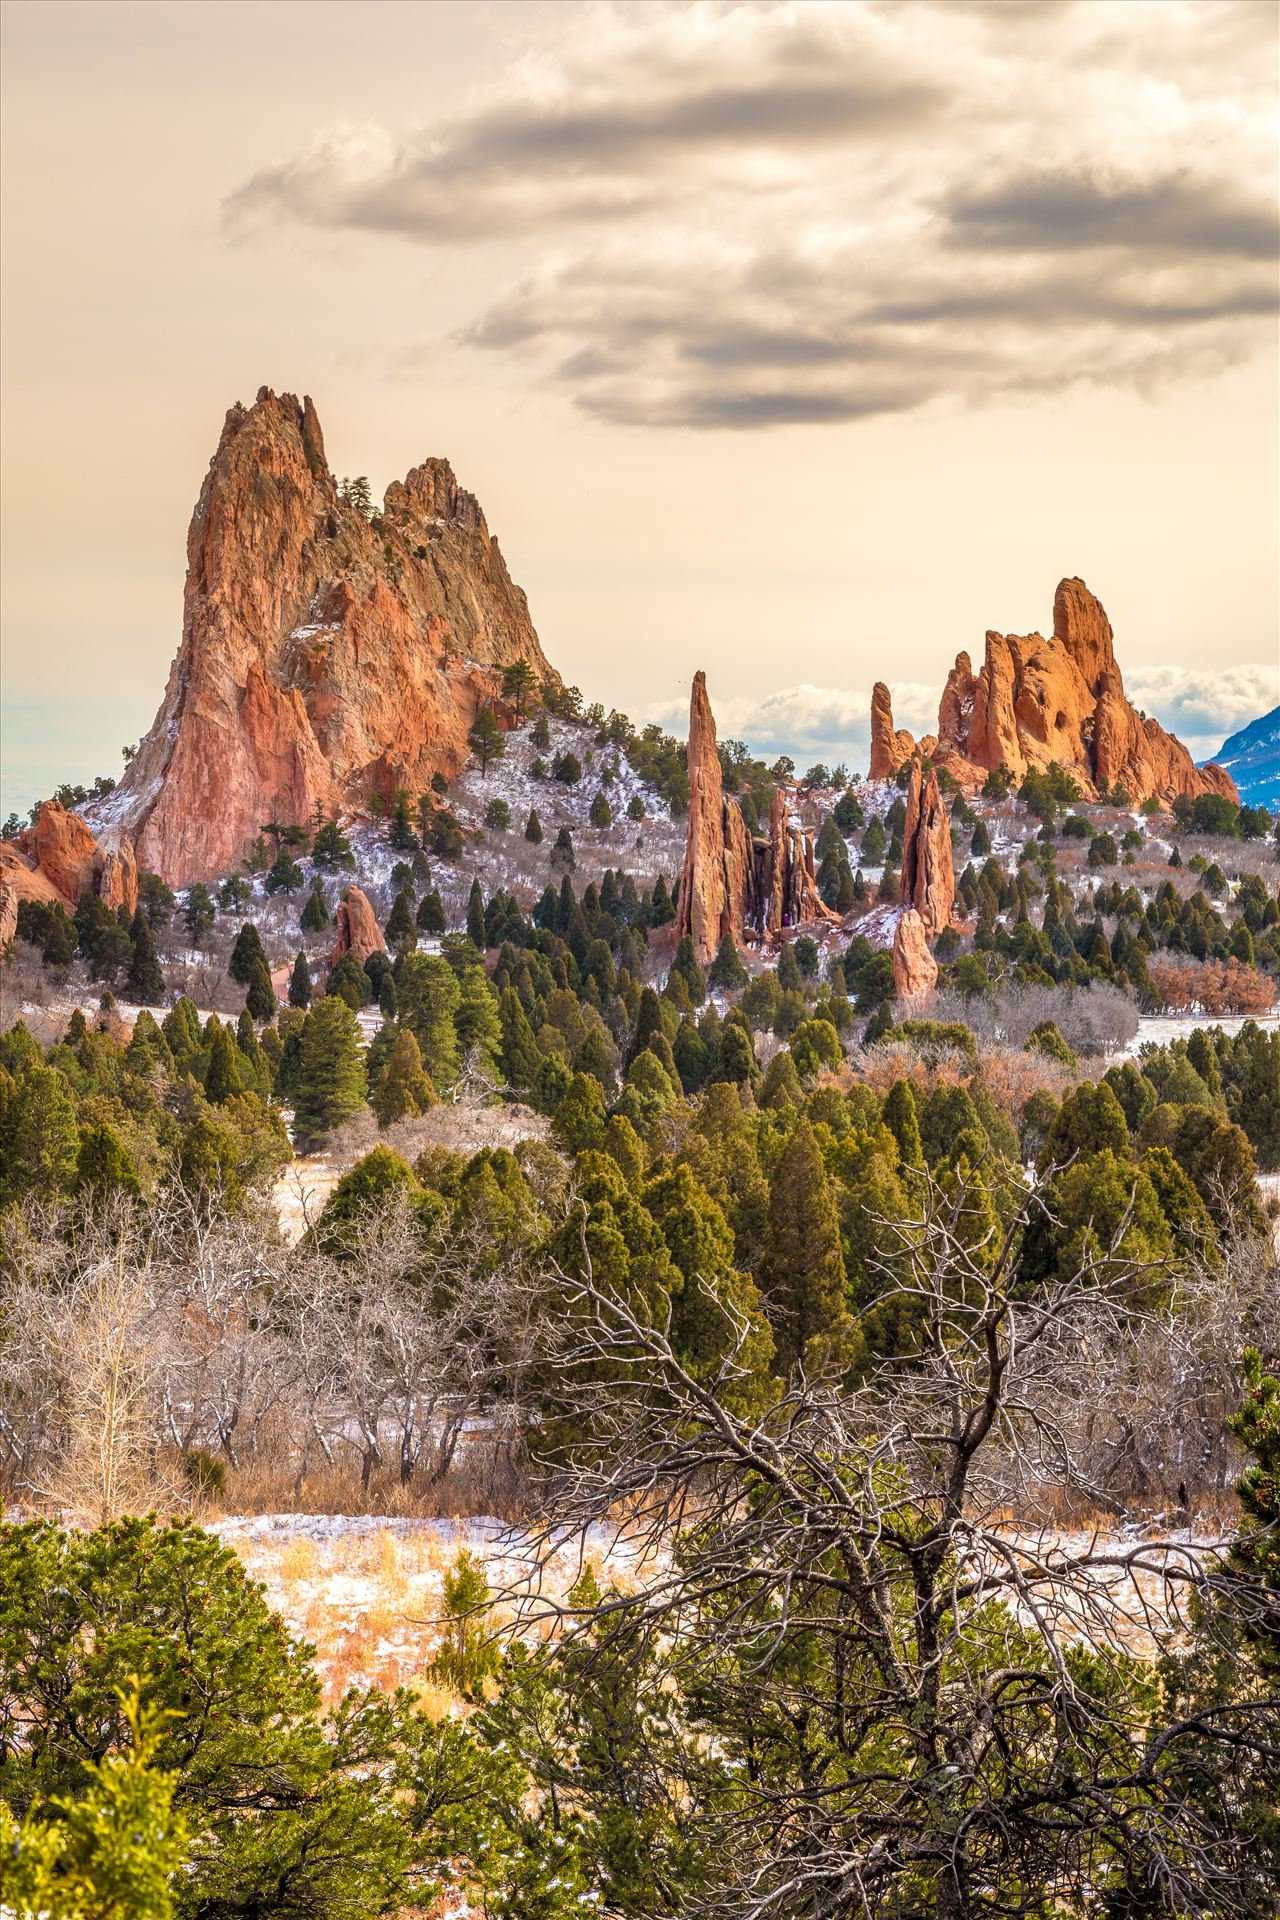 Cathedral spires at the garden of the gods